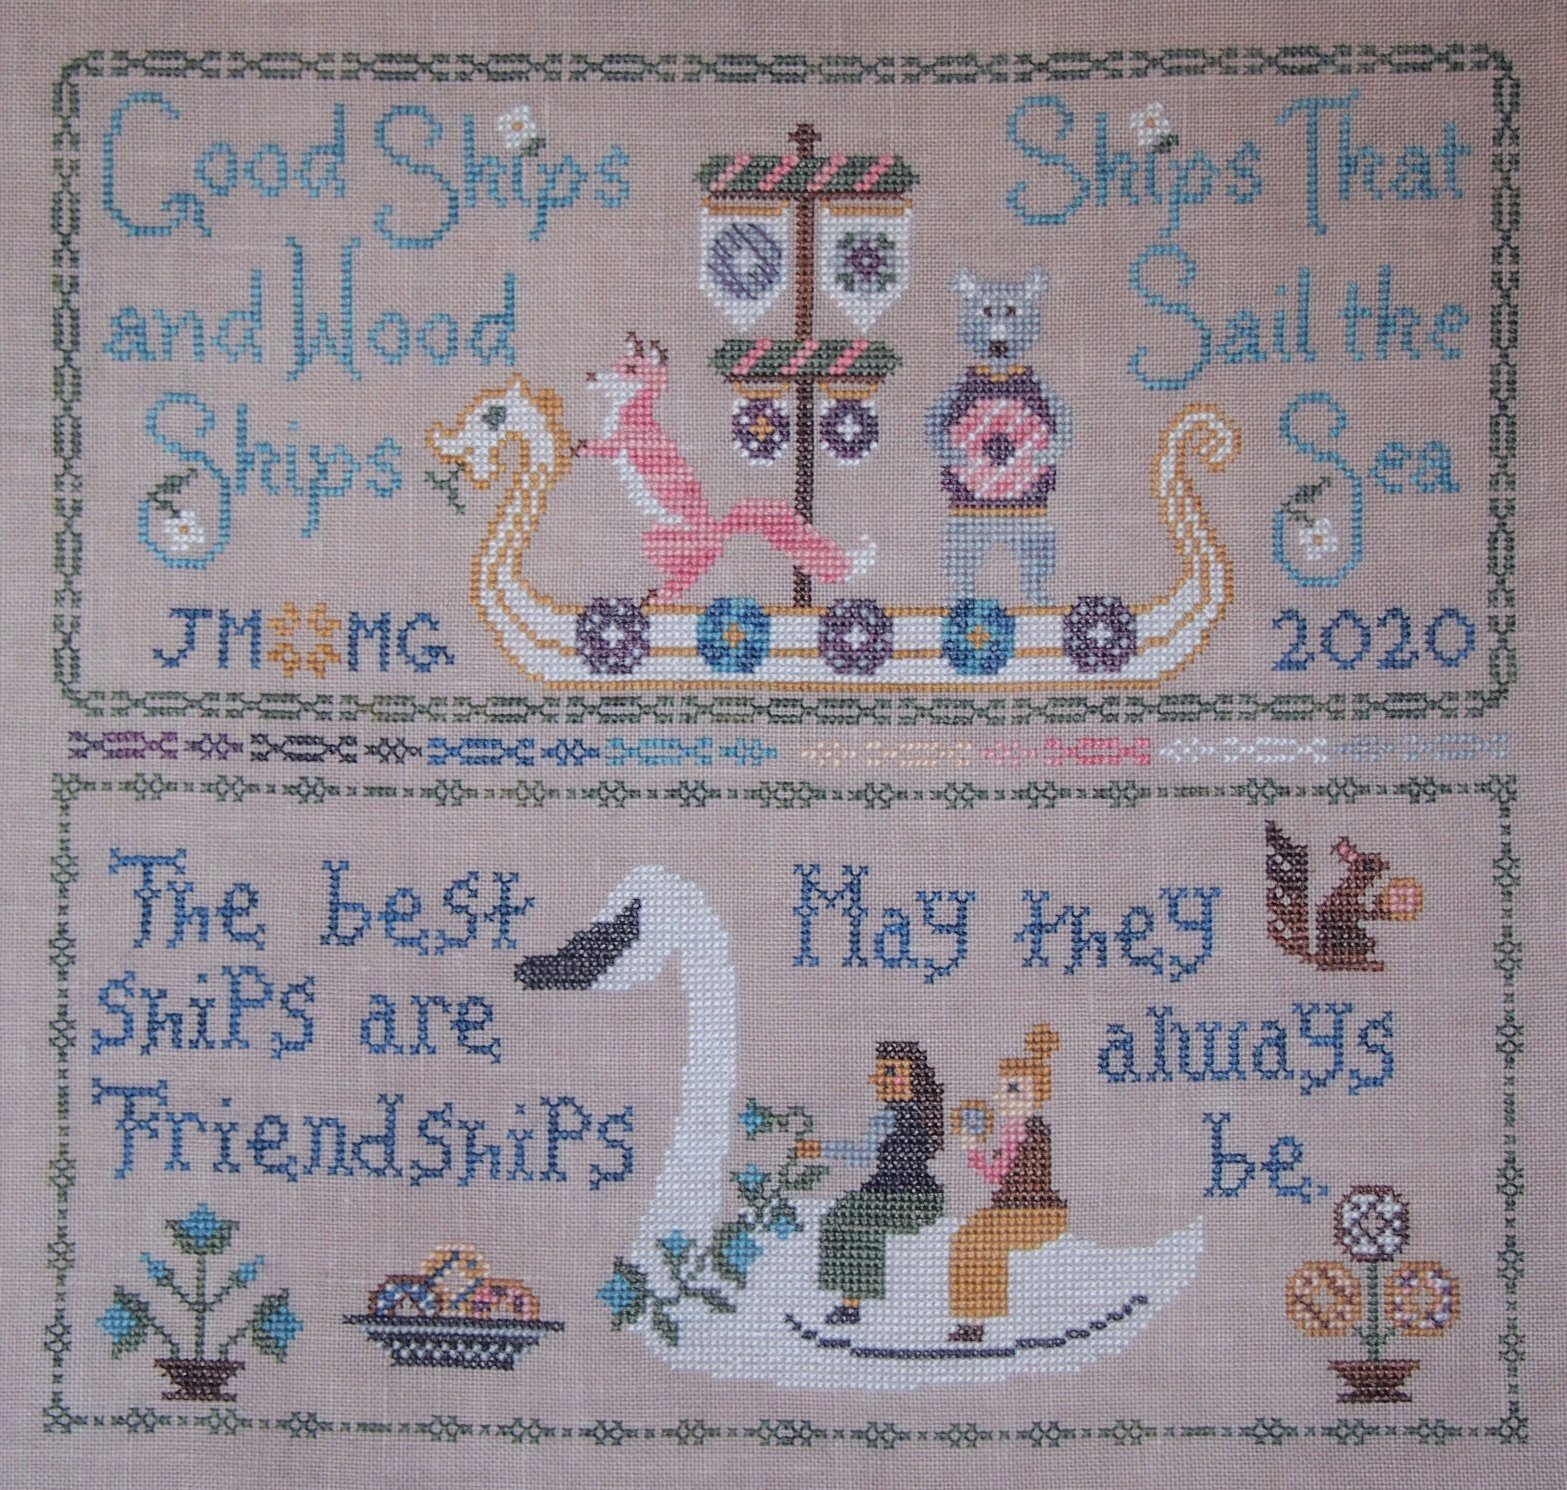 Blue Flower - Friendship Sampler